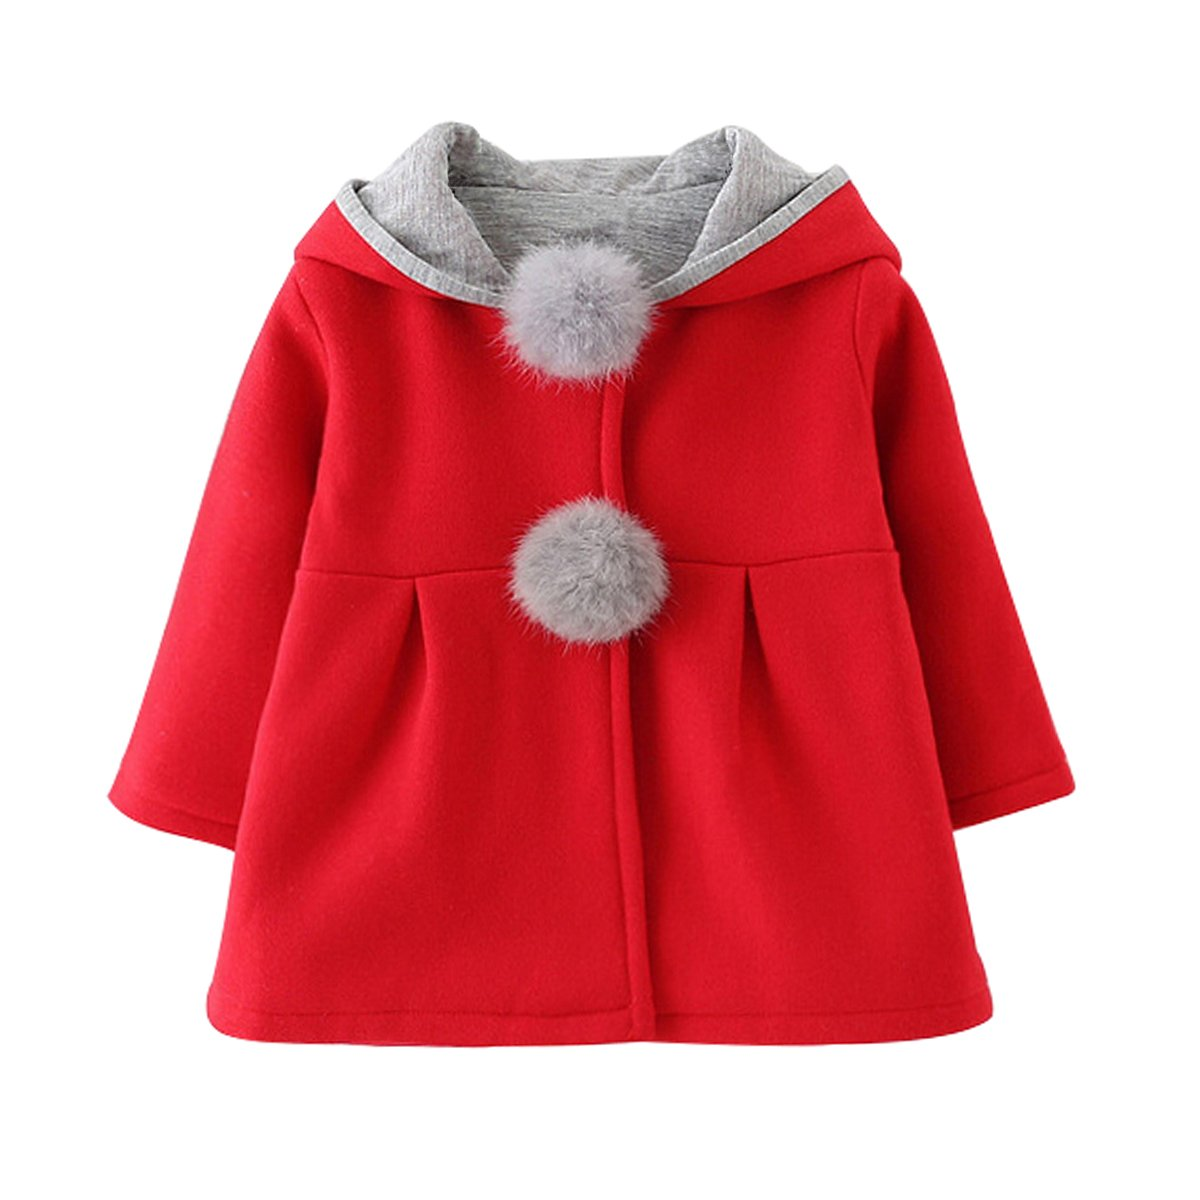 Evaliana Baby Girls Kids Toddlers Rabbit Bunny Ears Hoodie Outwear Jacket Coat